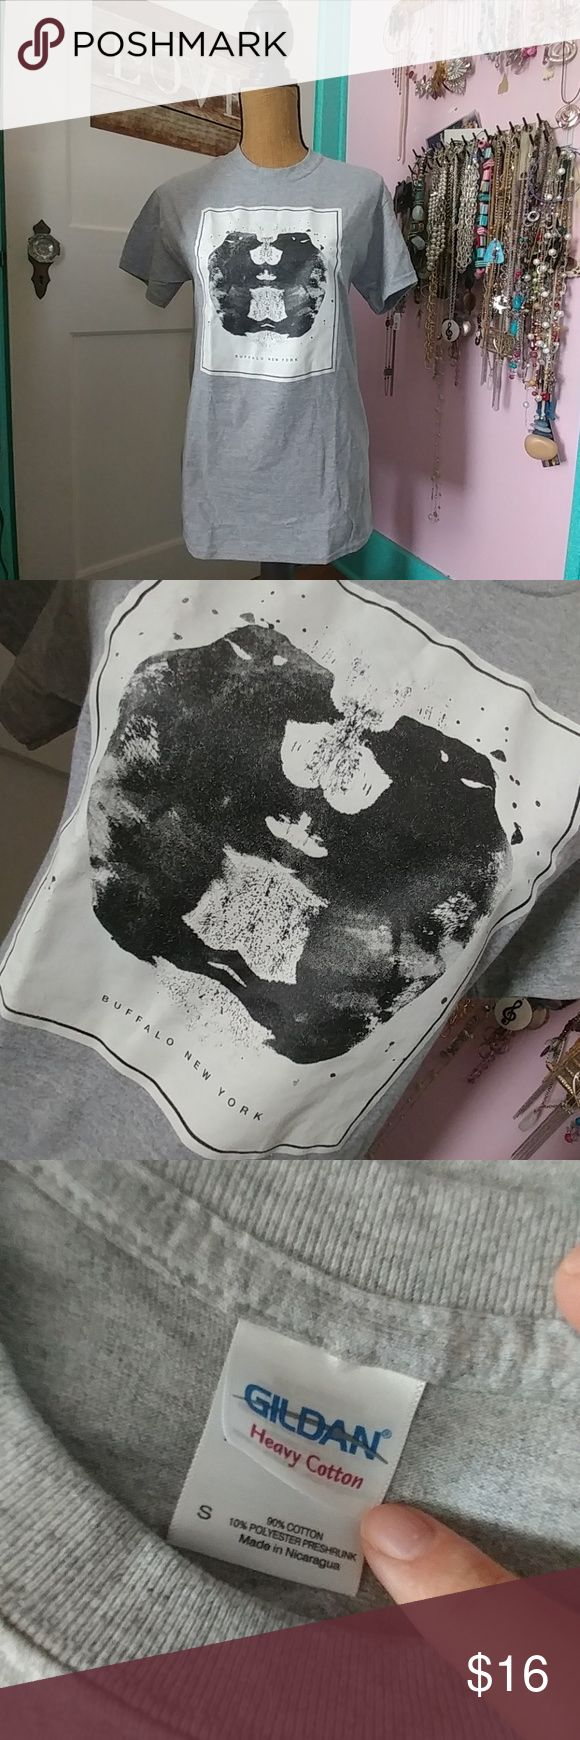 Selling this BNWOT Buffalo NY Ink blot tee on Poshmark! My username is: alibanana. #shopmycloset #poshmark #fashion #shopping #style #forsale #Gildan #Tops